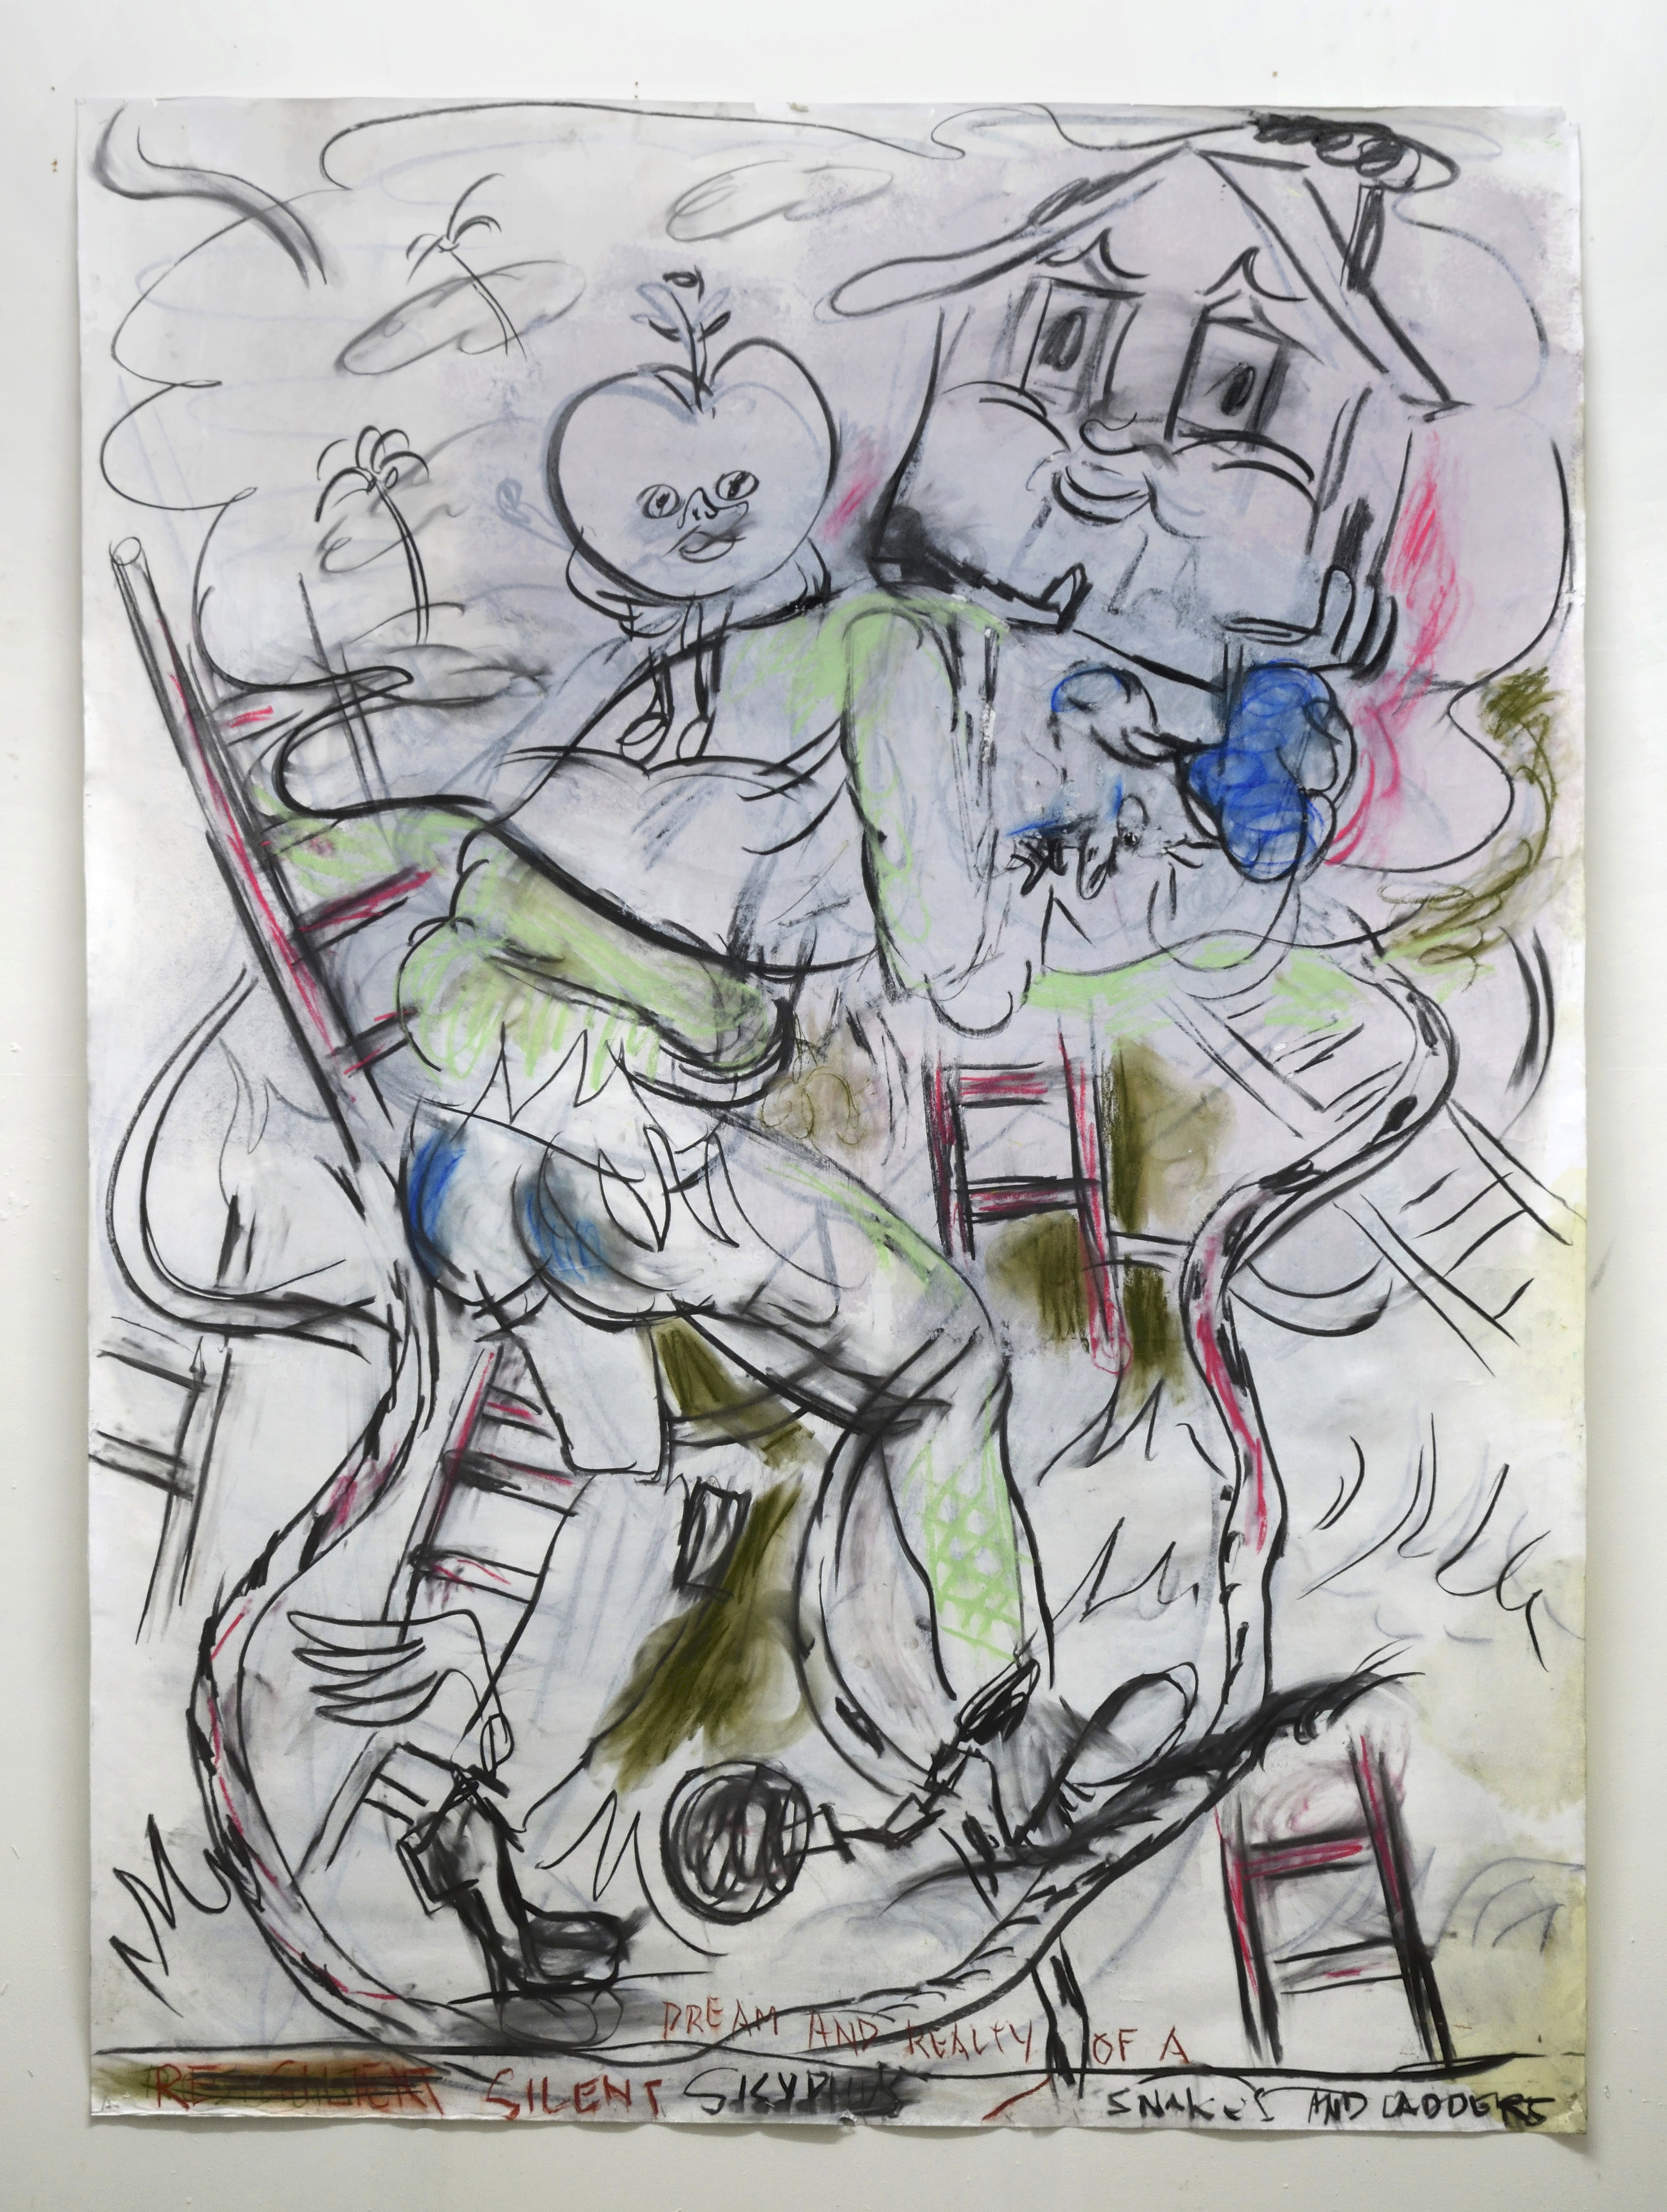 'Dream and Reality of a silent Sisyphus' 2018   Charcoal and pastel on paper. 200 x 150 cm